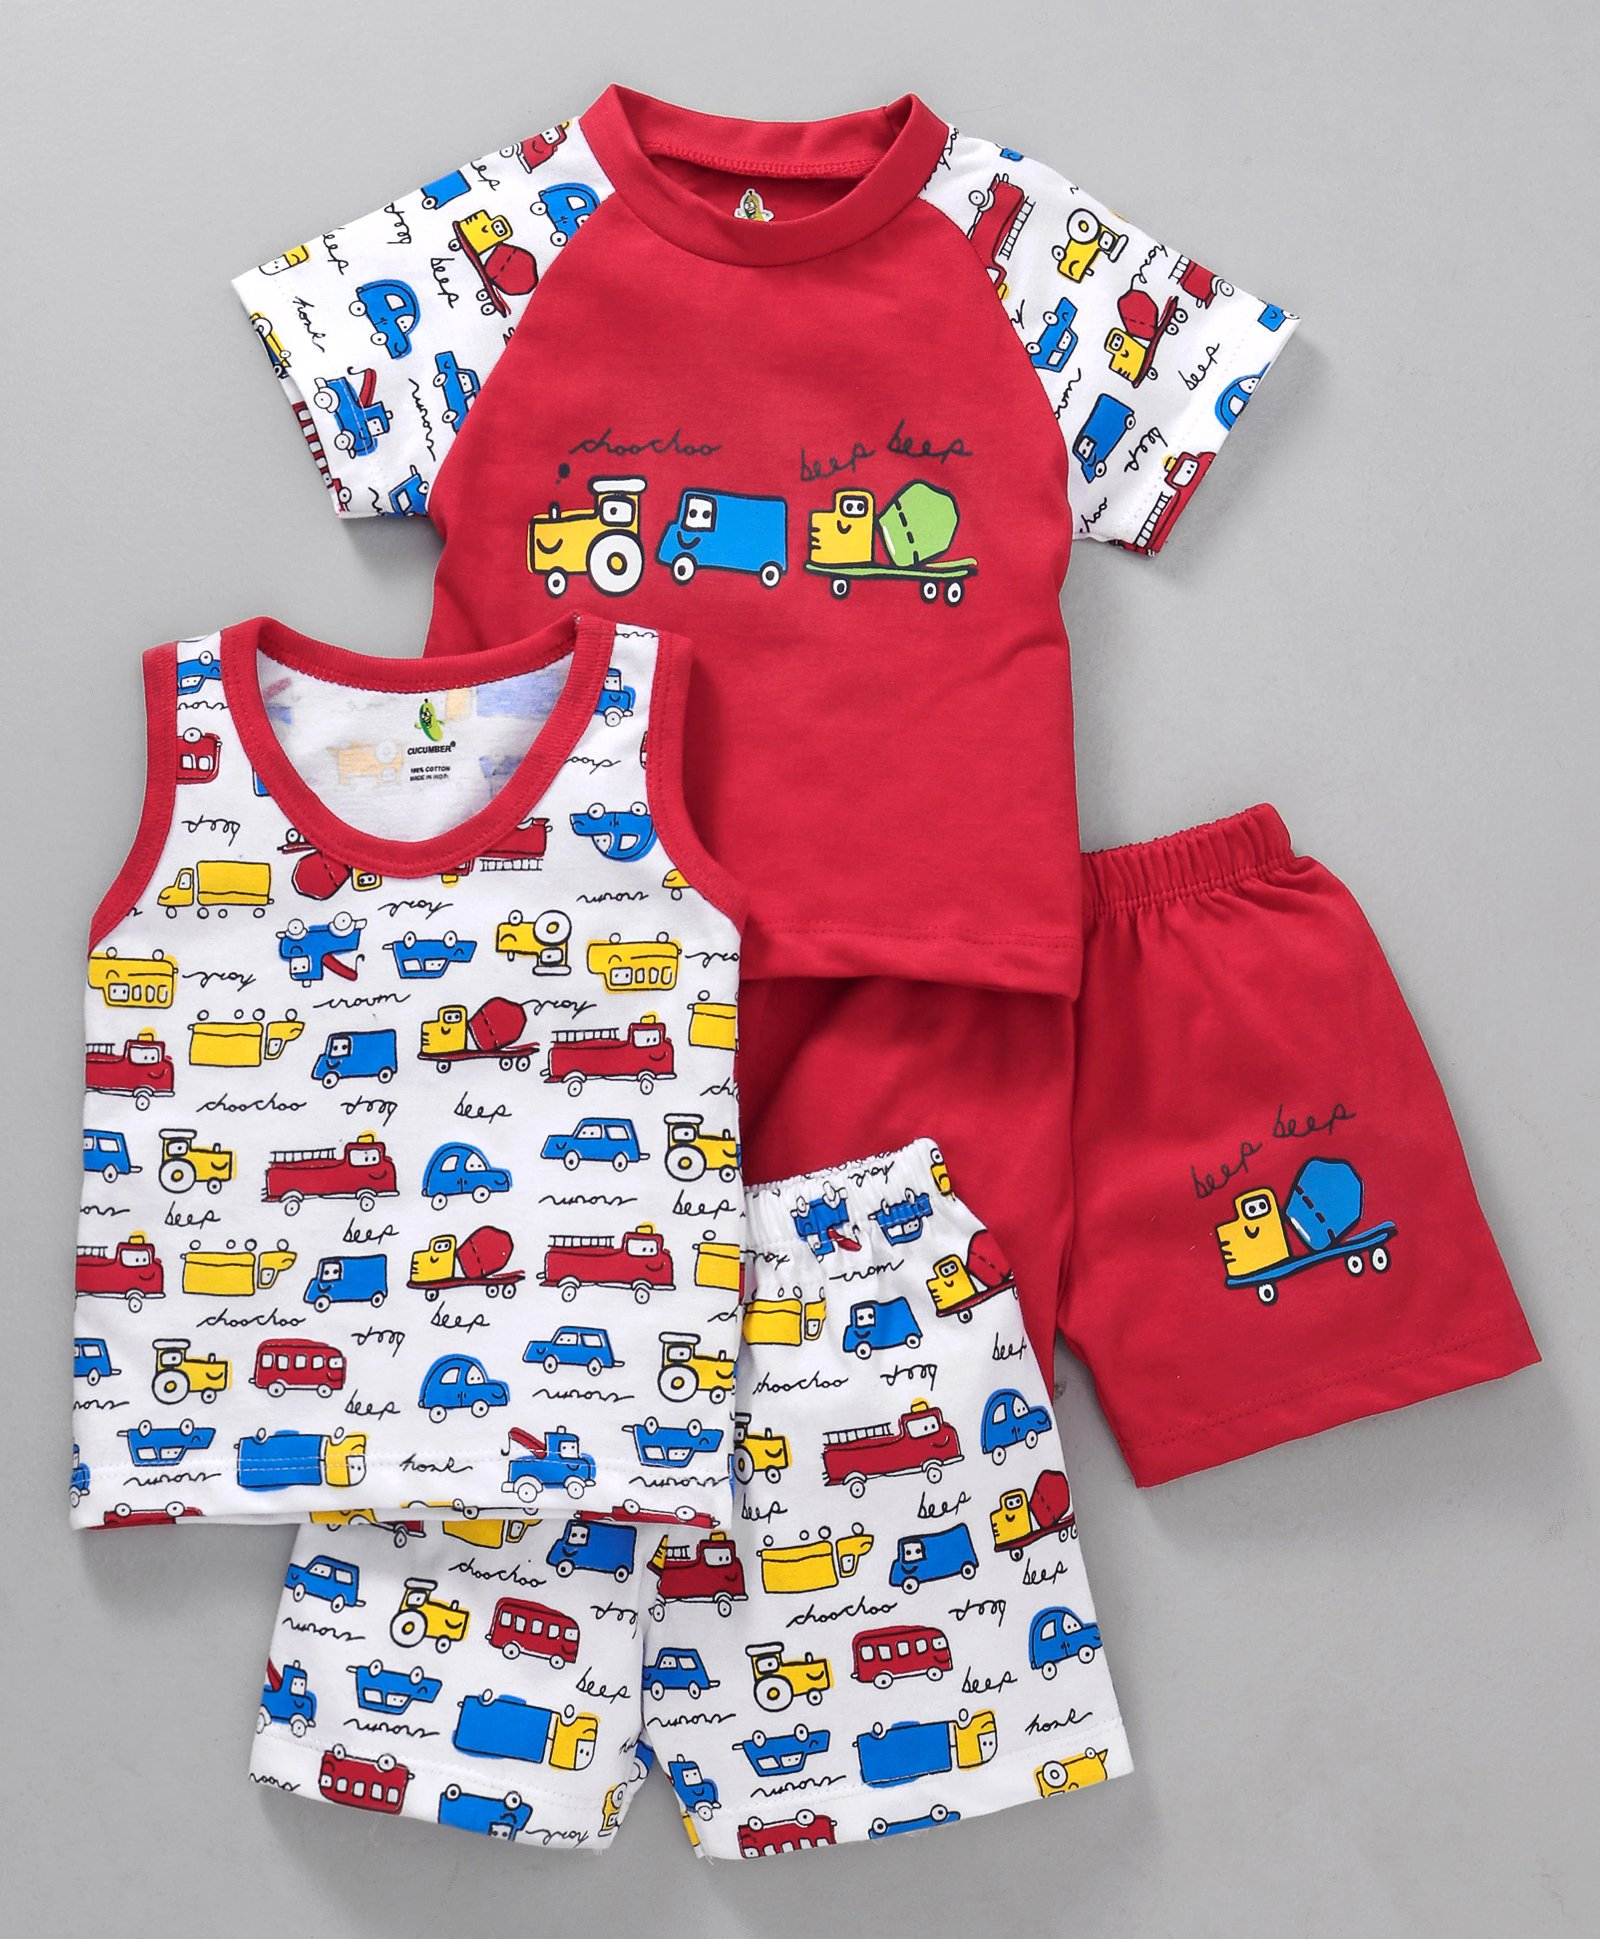 Buy Cucumber Round Neck Tee With Shorts Vehicle Print Pack of 2 Red for  Boys (3-6 Months) Online in India, Shop at FirstCry com - 2468955